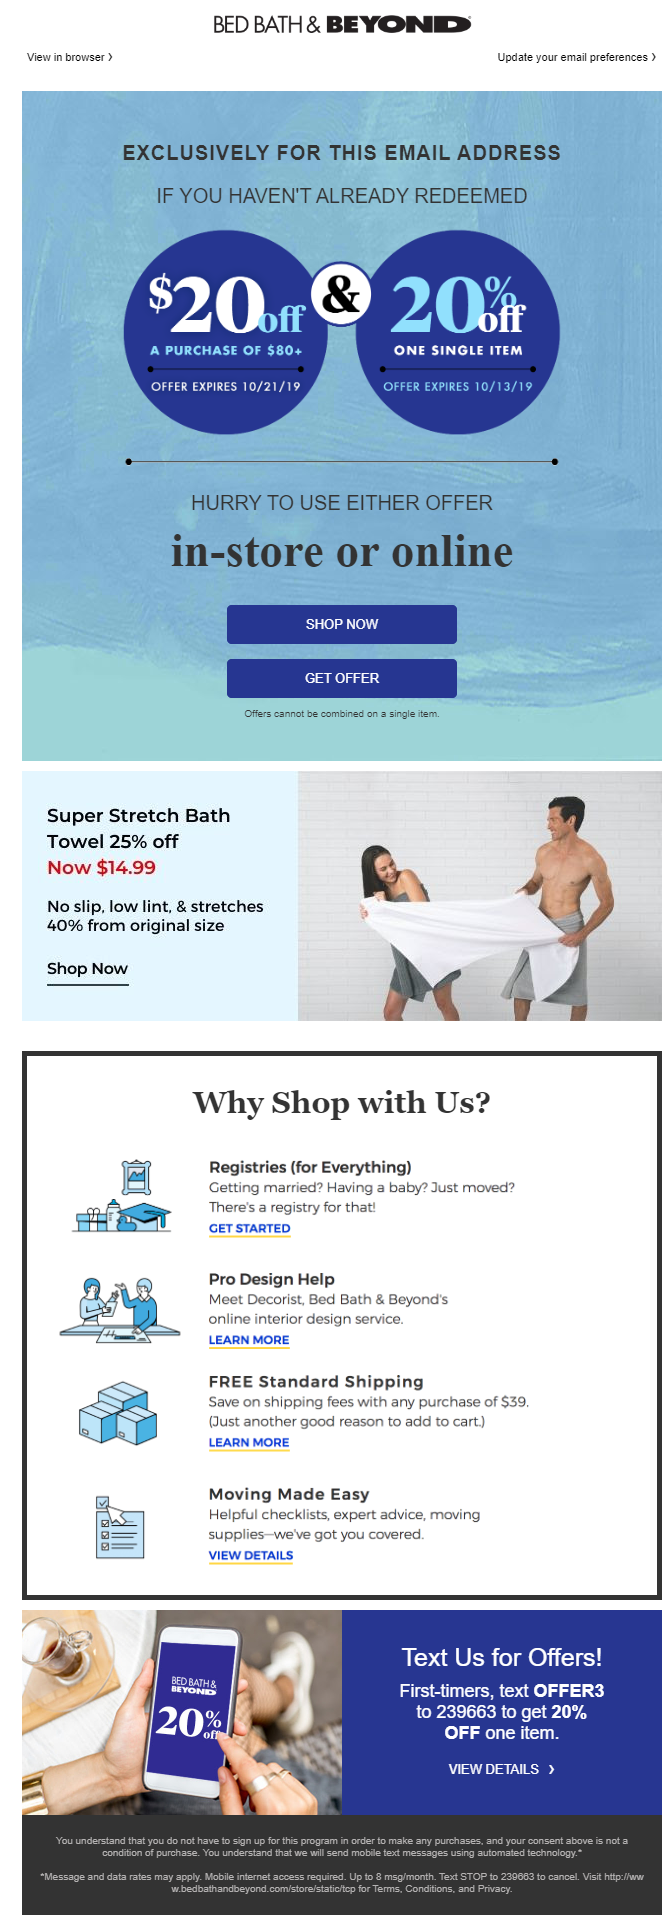 Image, Bed Bath & Beyond, Reward Your Loyal Customers for Better Customer Retention